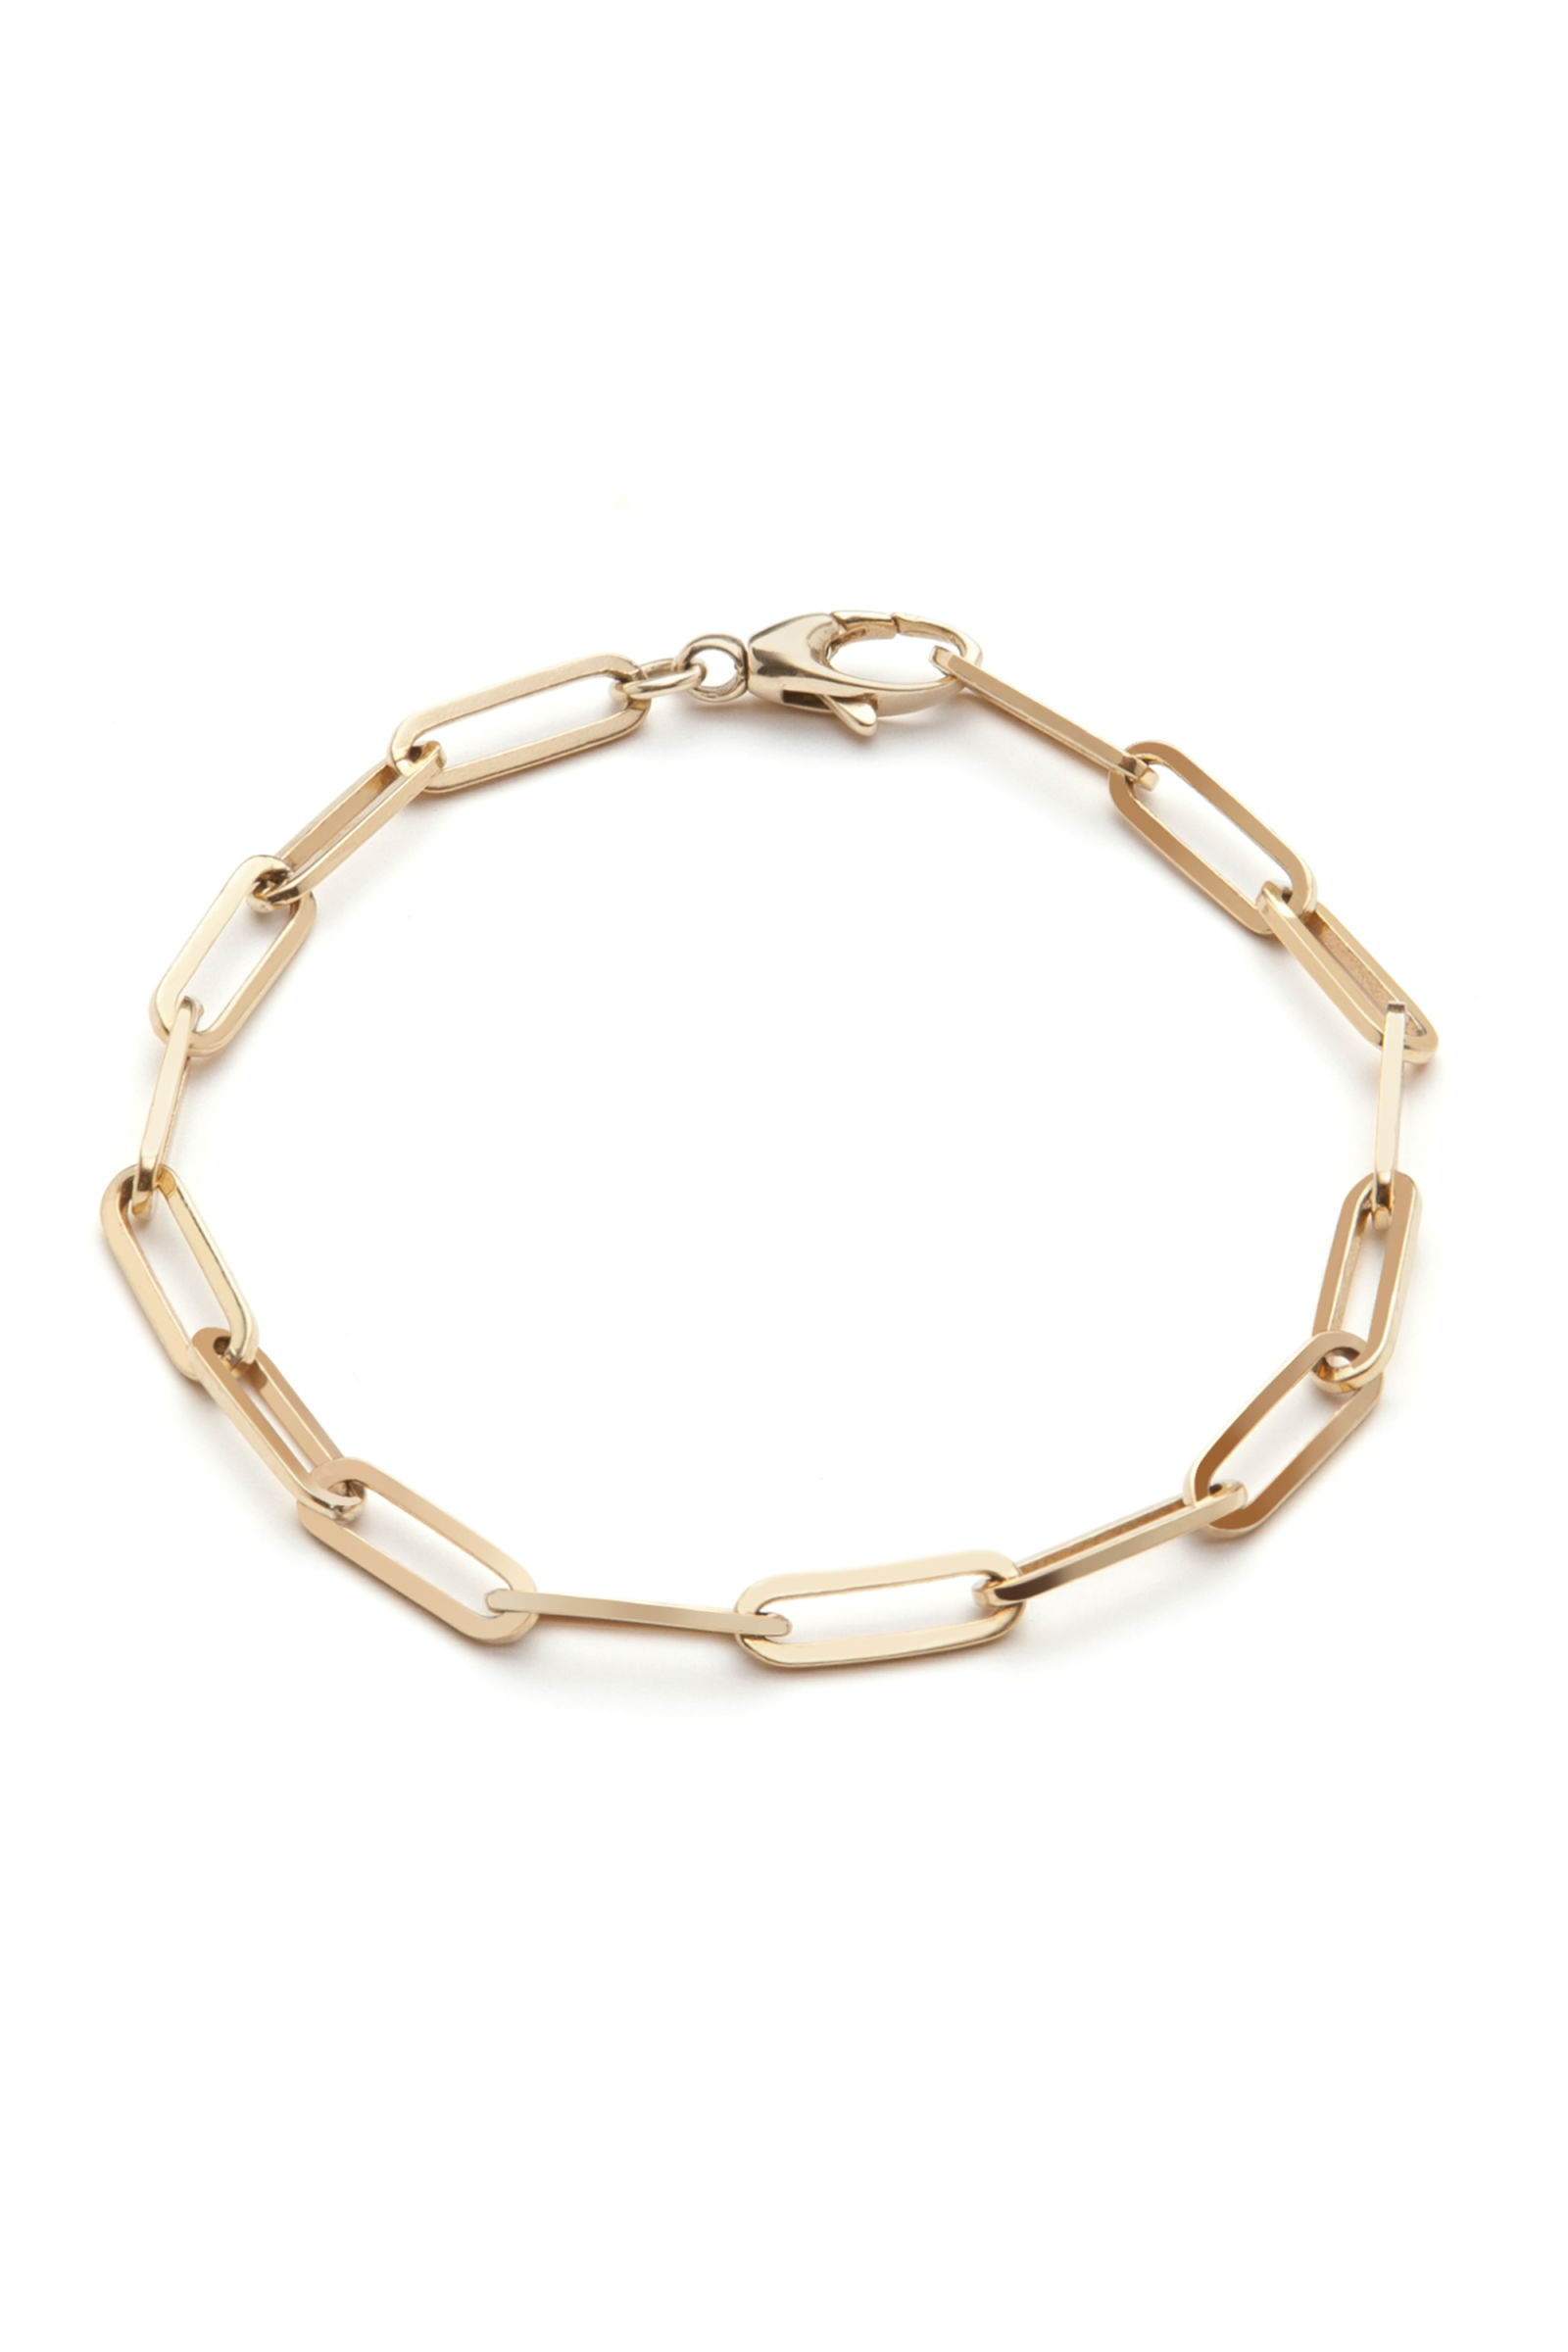 12 Gold Anklets You Can Wear Every Day Why The Gold Anklet Bracelet Is The  Accessory Of Summer 2017